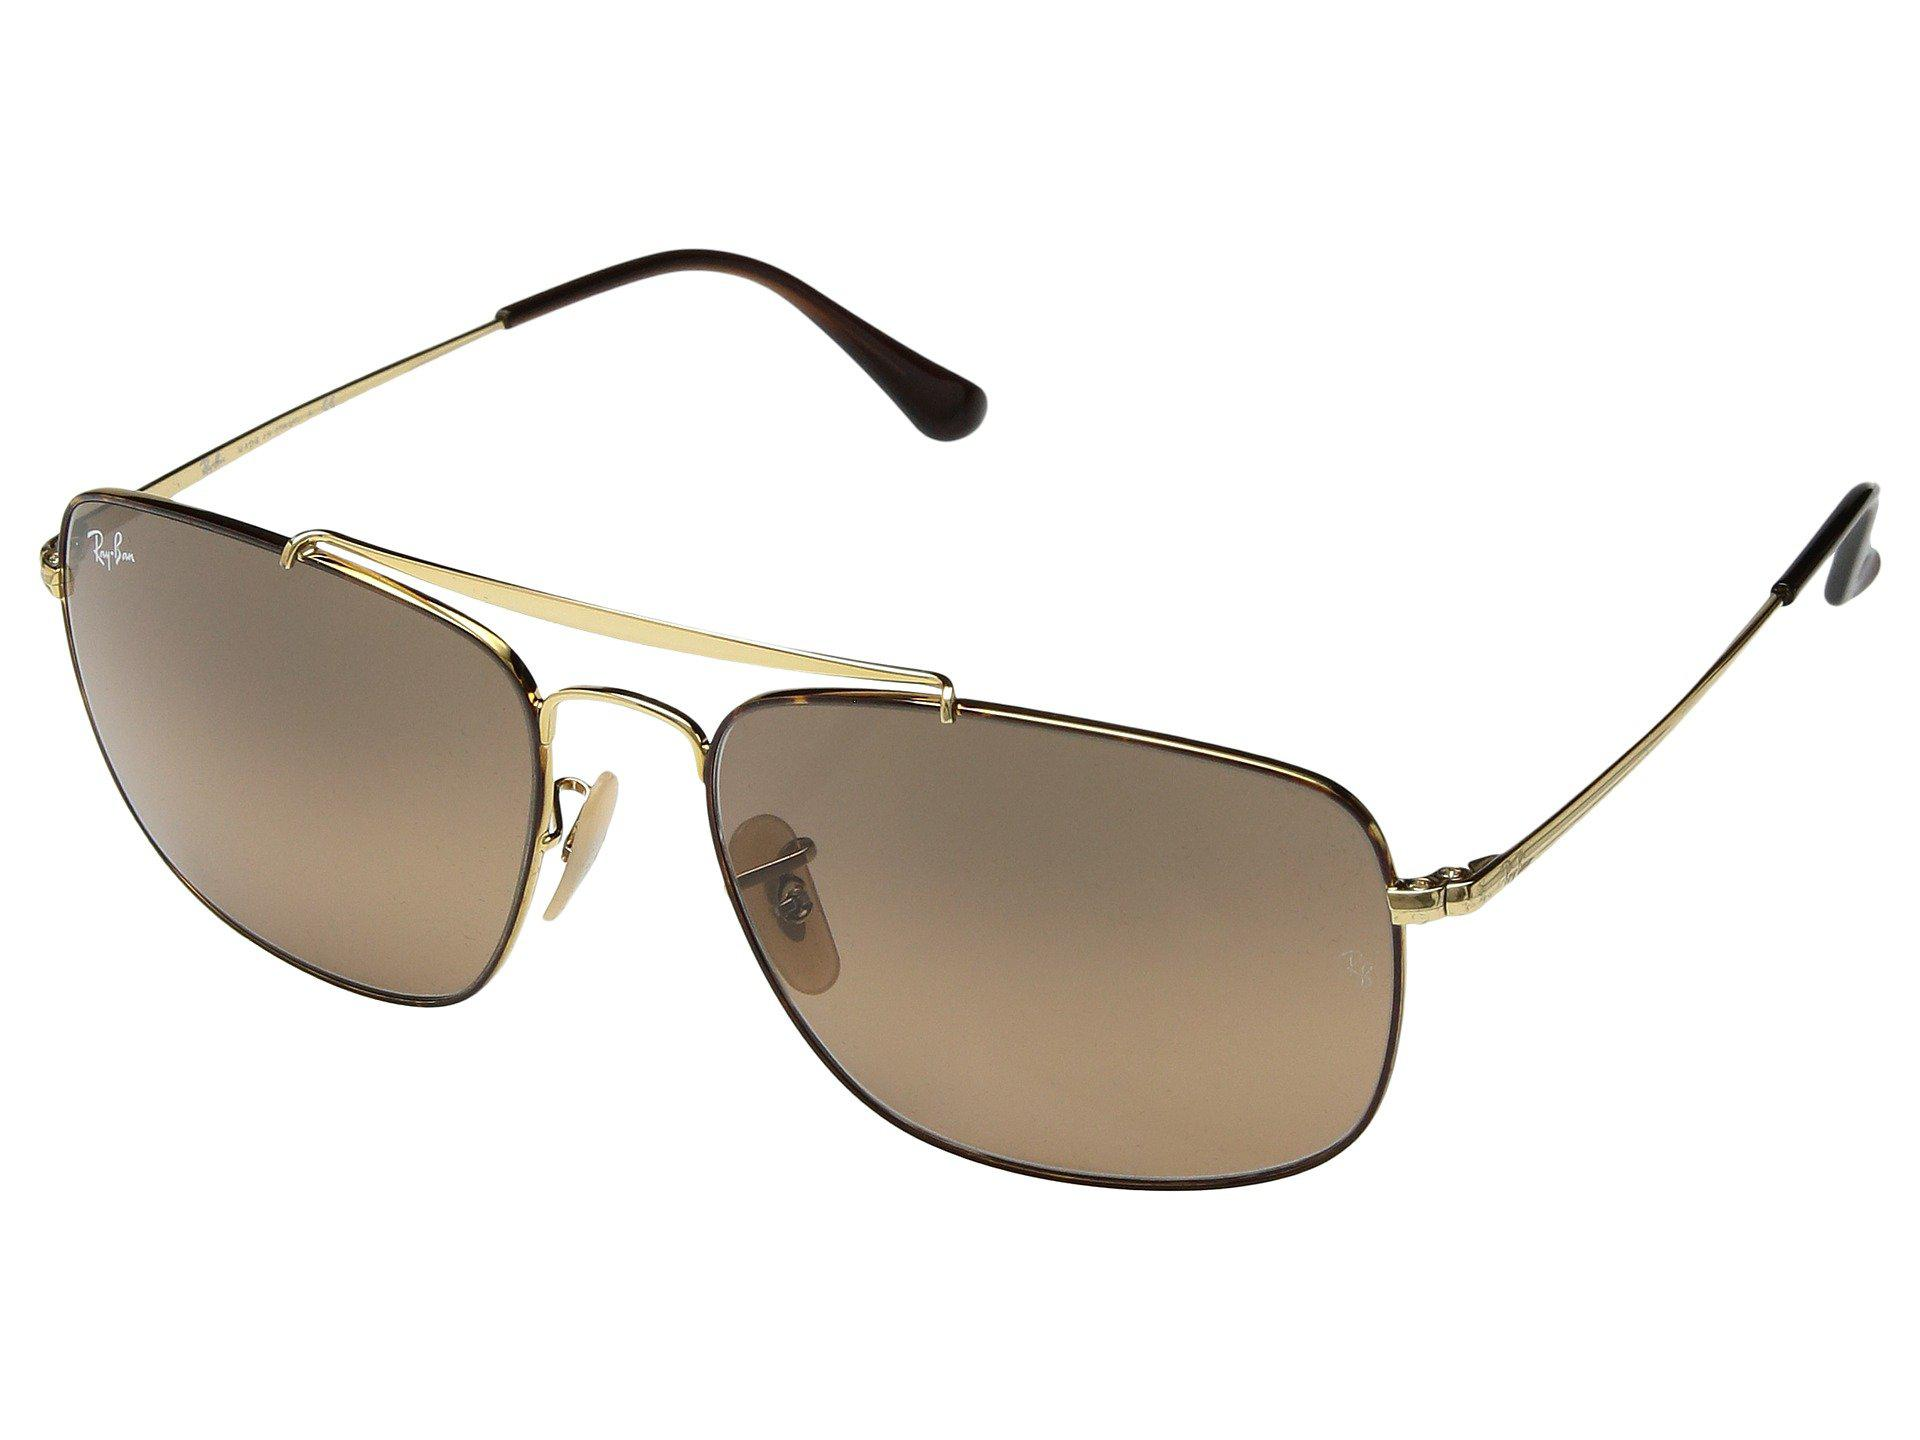 521a84e497f Lyst - Ray-Ban The Colonel Rb3560 61mm (gold green) Fashion ...